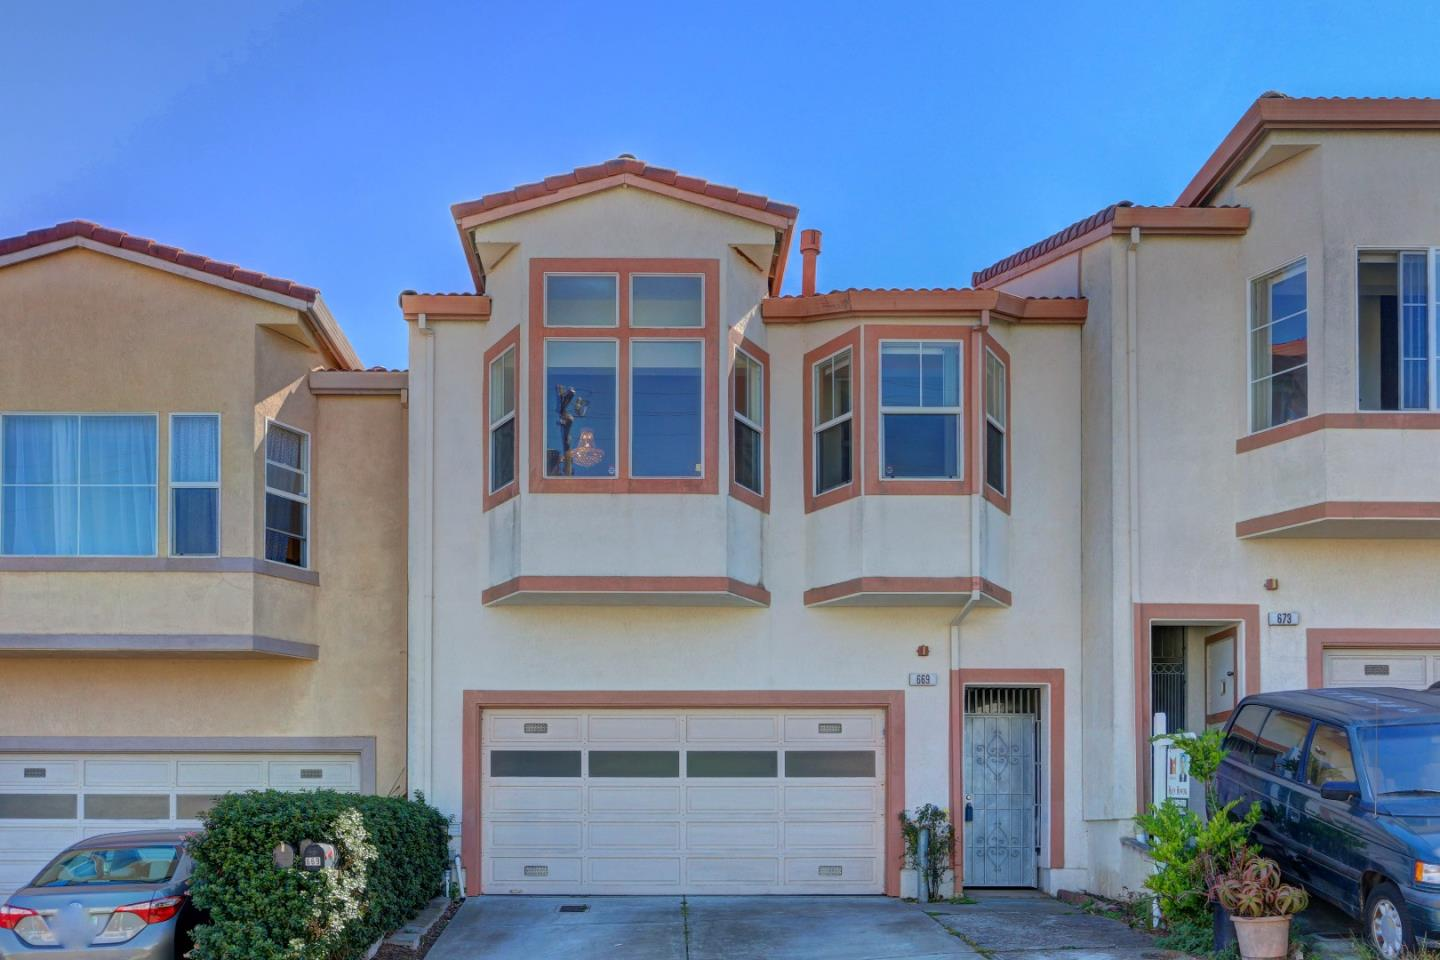 669 Bellevue Ave, Daly City, CA 94014 - 4 Beds   3 Baths (Sold ...